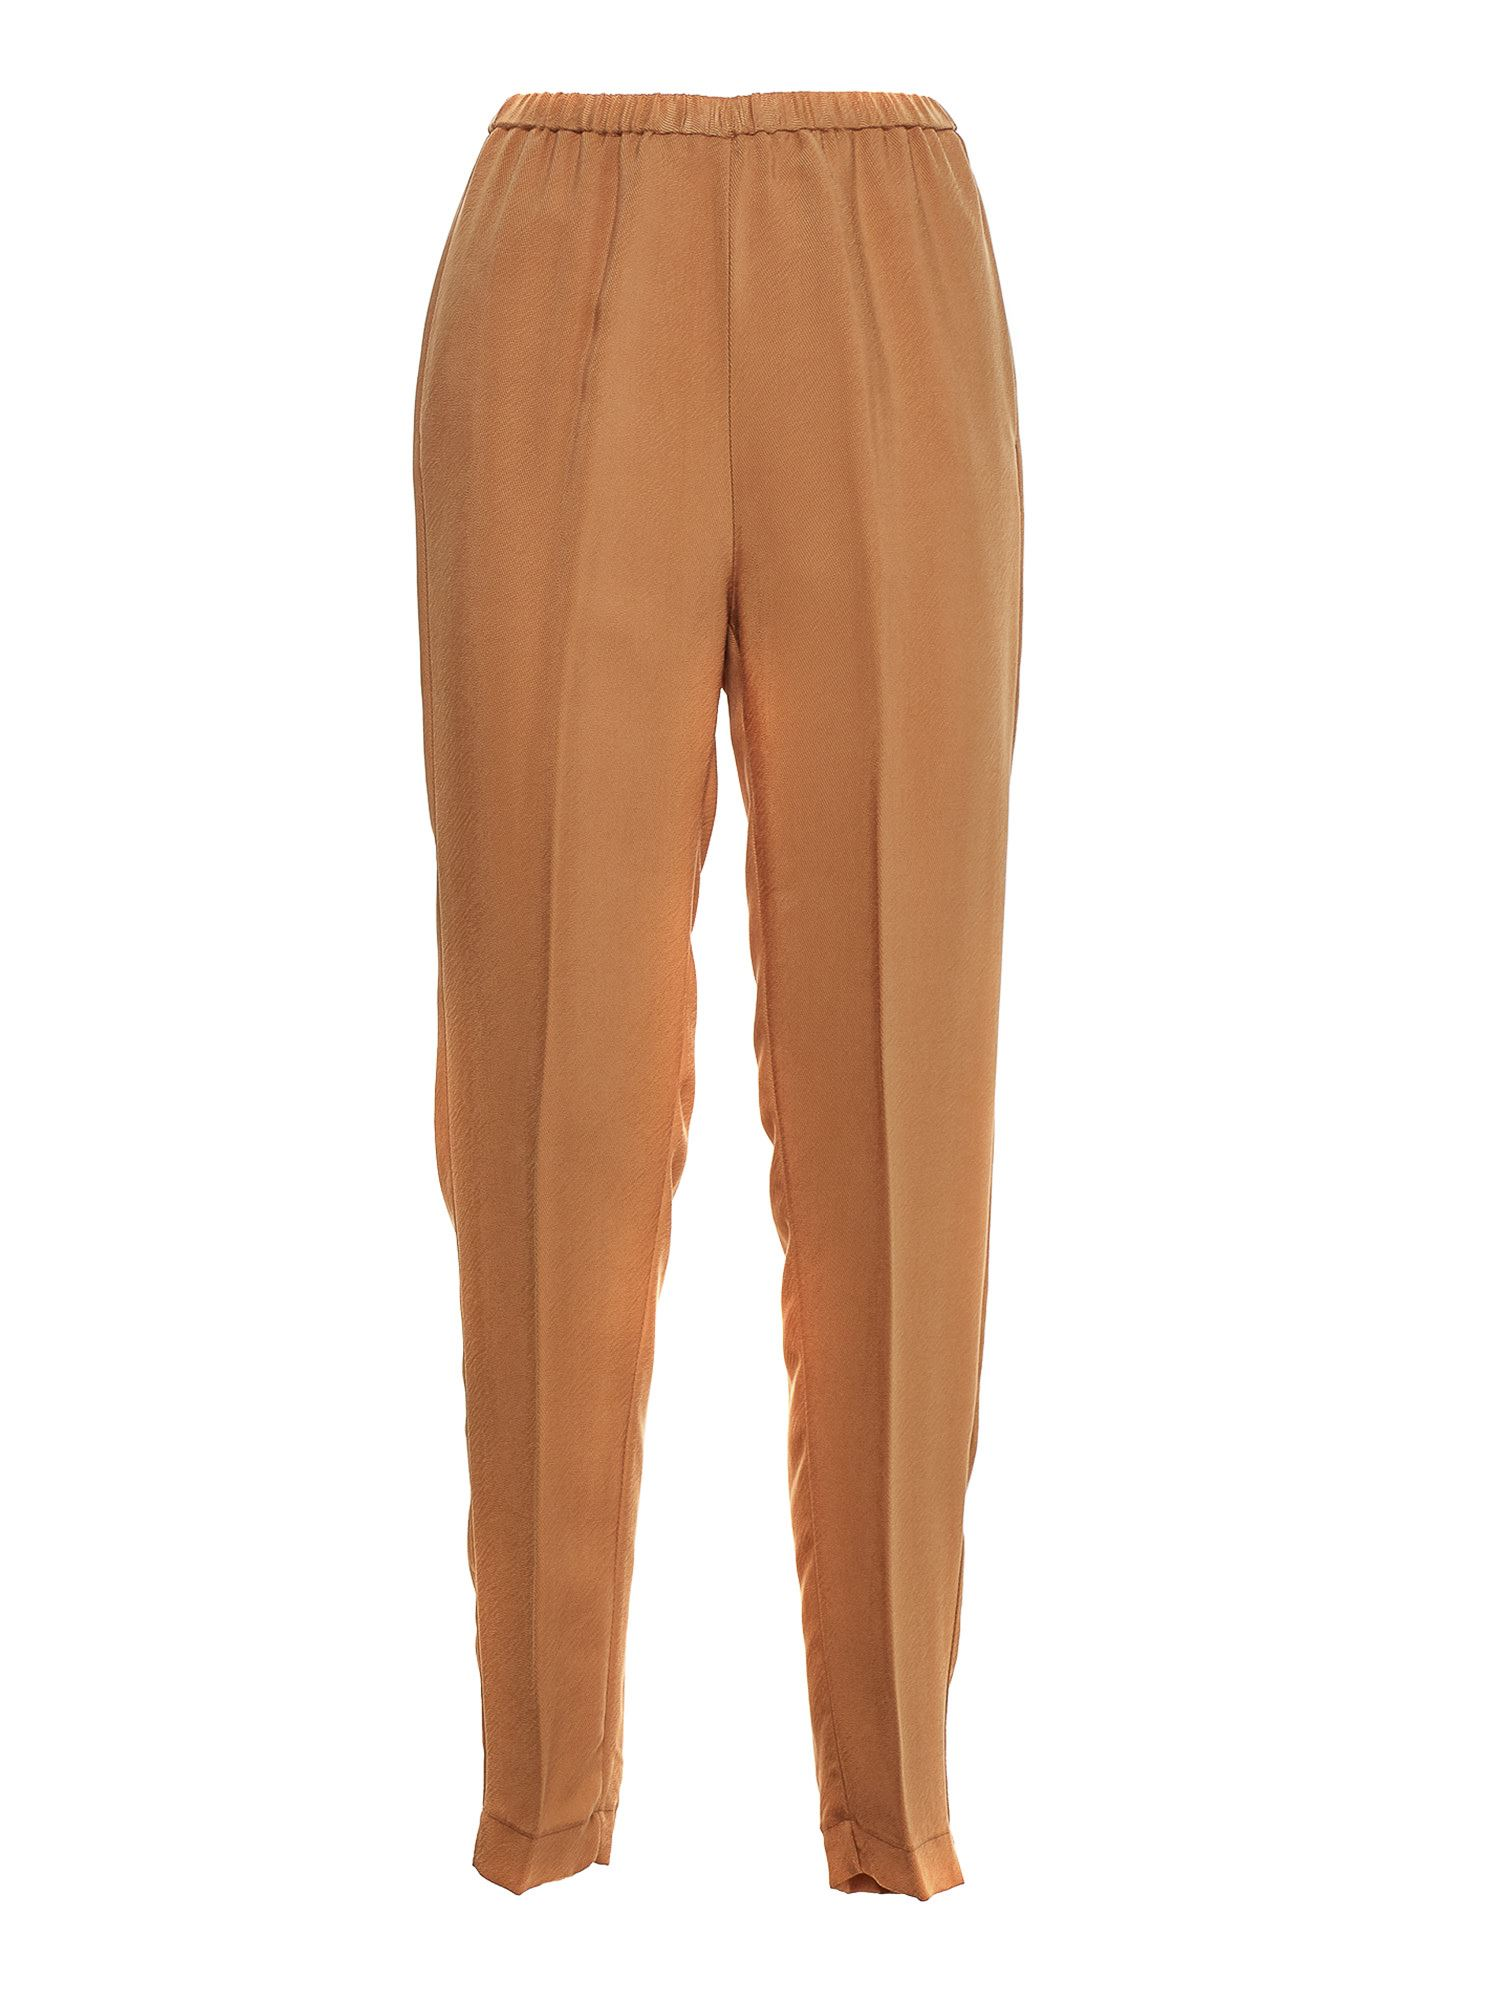 Forte Forte ELASTICATED WAIST PANTS IN THE COLOR